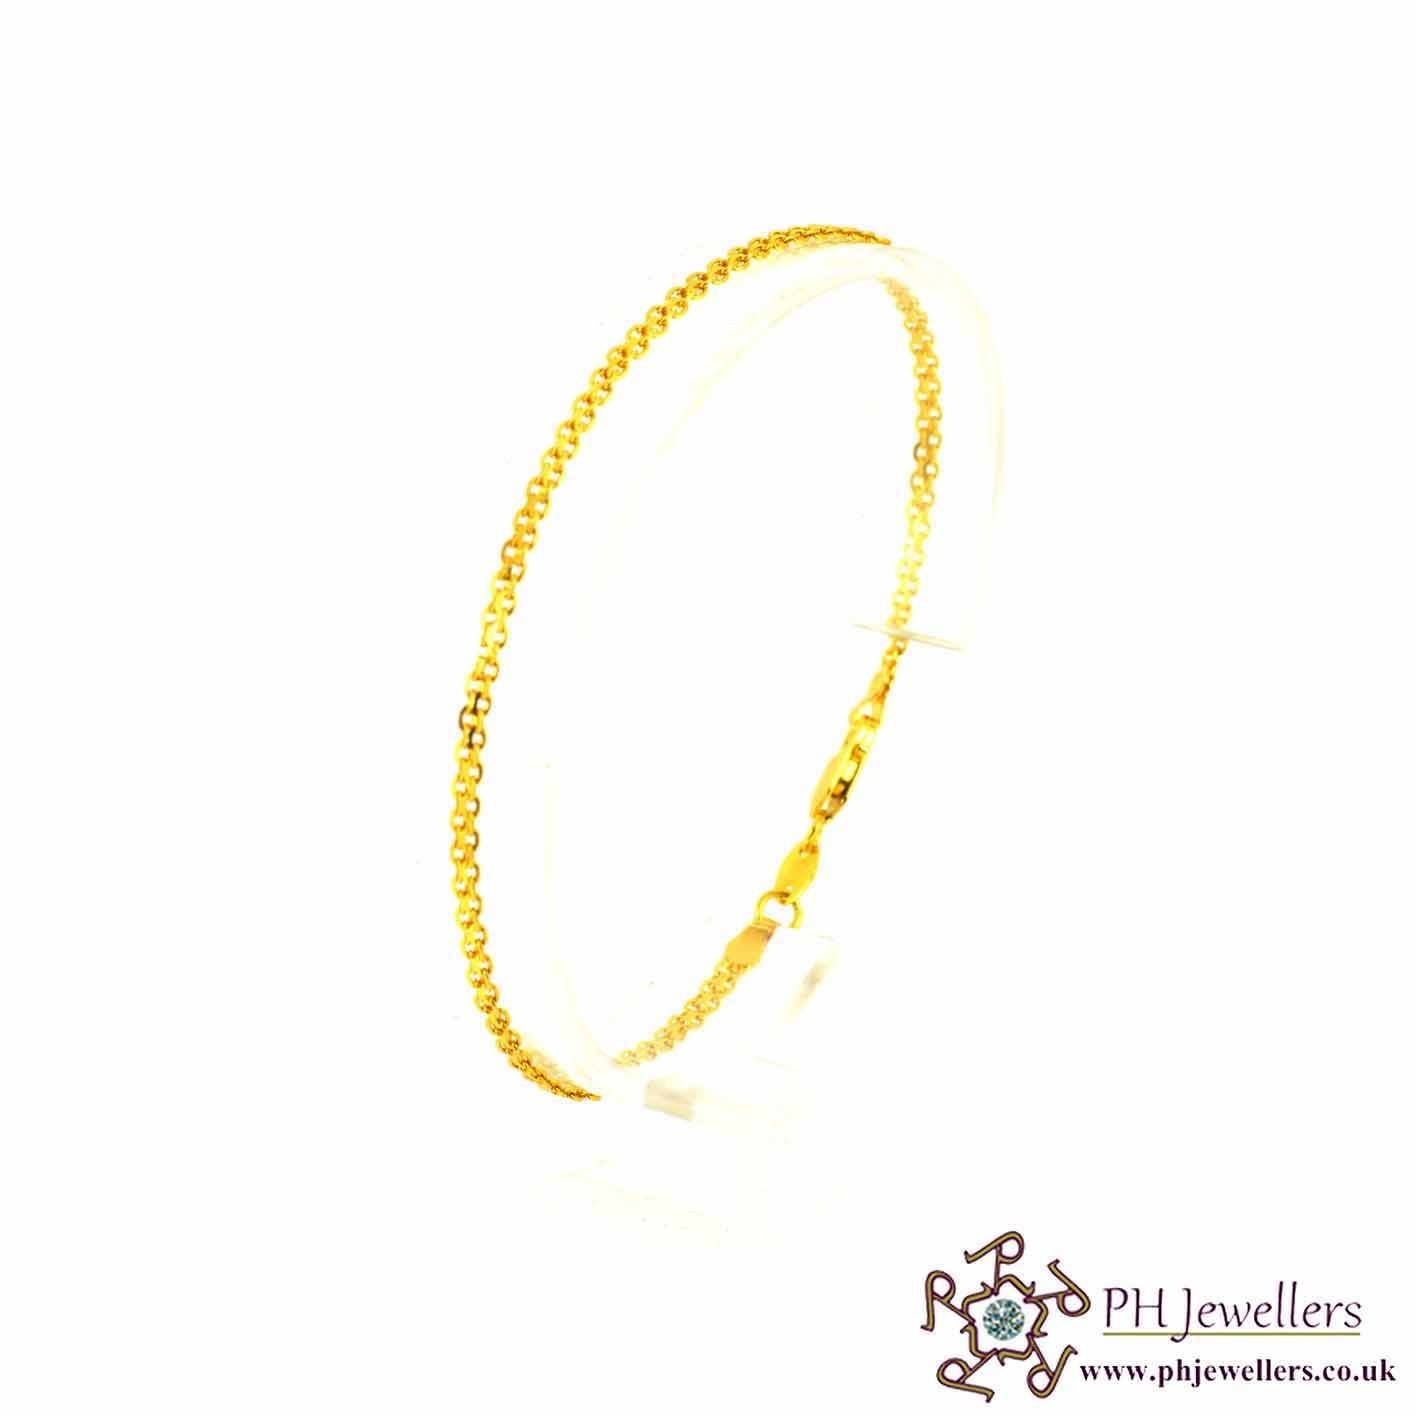 22ct 916 Hallmark Yellow Gold Bracelet LB4